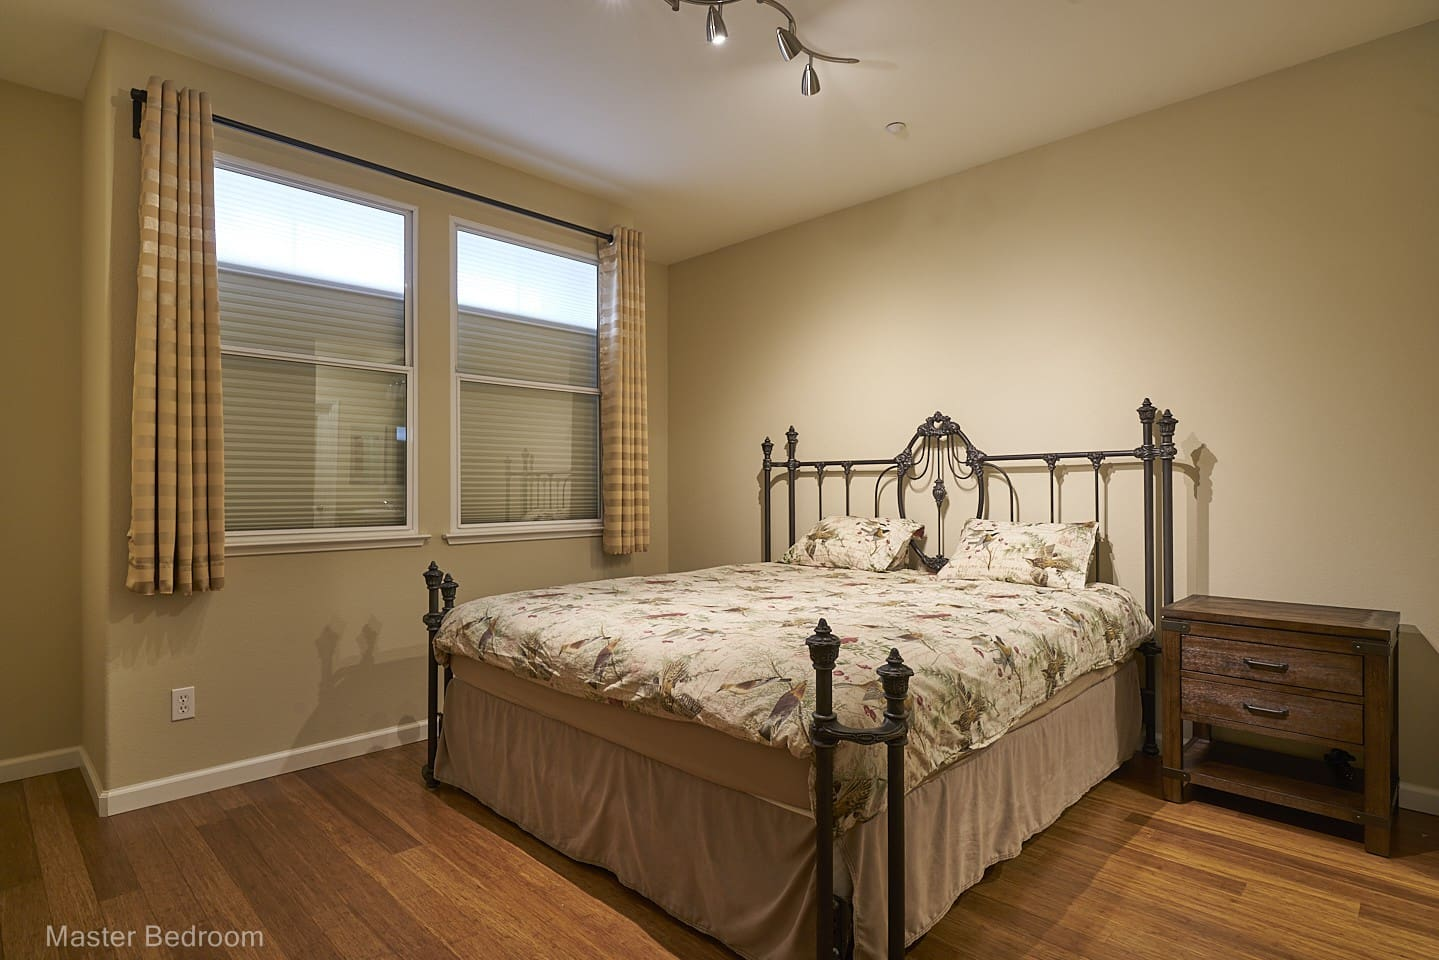 California King bed and soundproof windows for super quiet and comfortable sleep